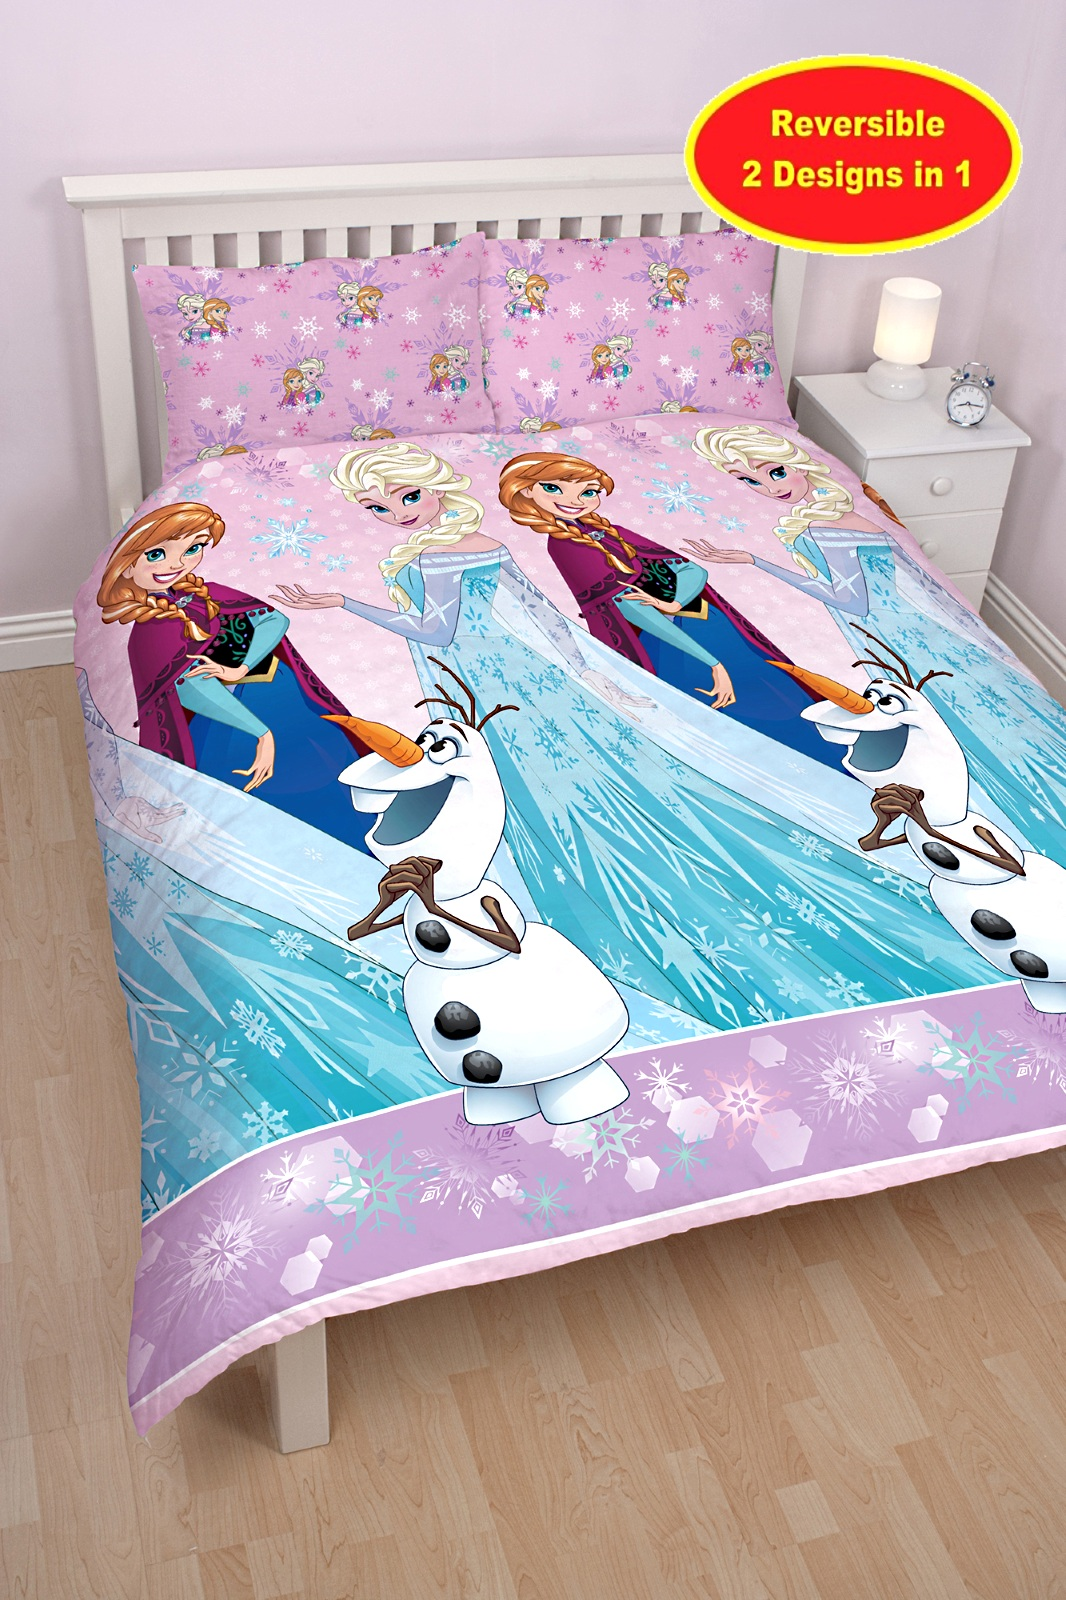 disney frozen magic reversible double duvet quilt cover kids girls bedding set ebay. Black Bedroom Furniture Sets. Home Design Ideas